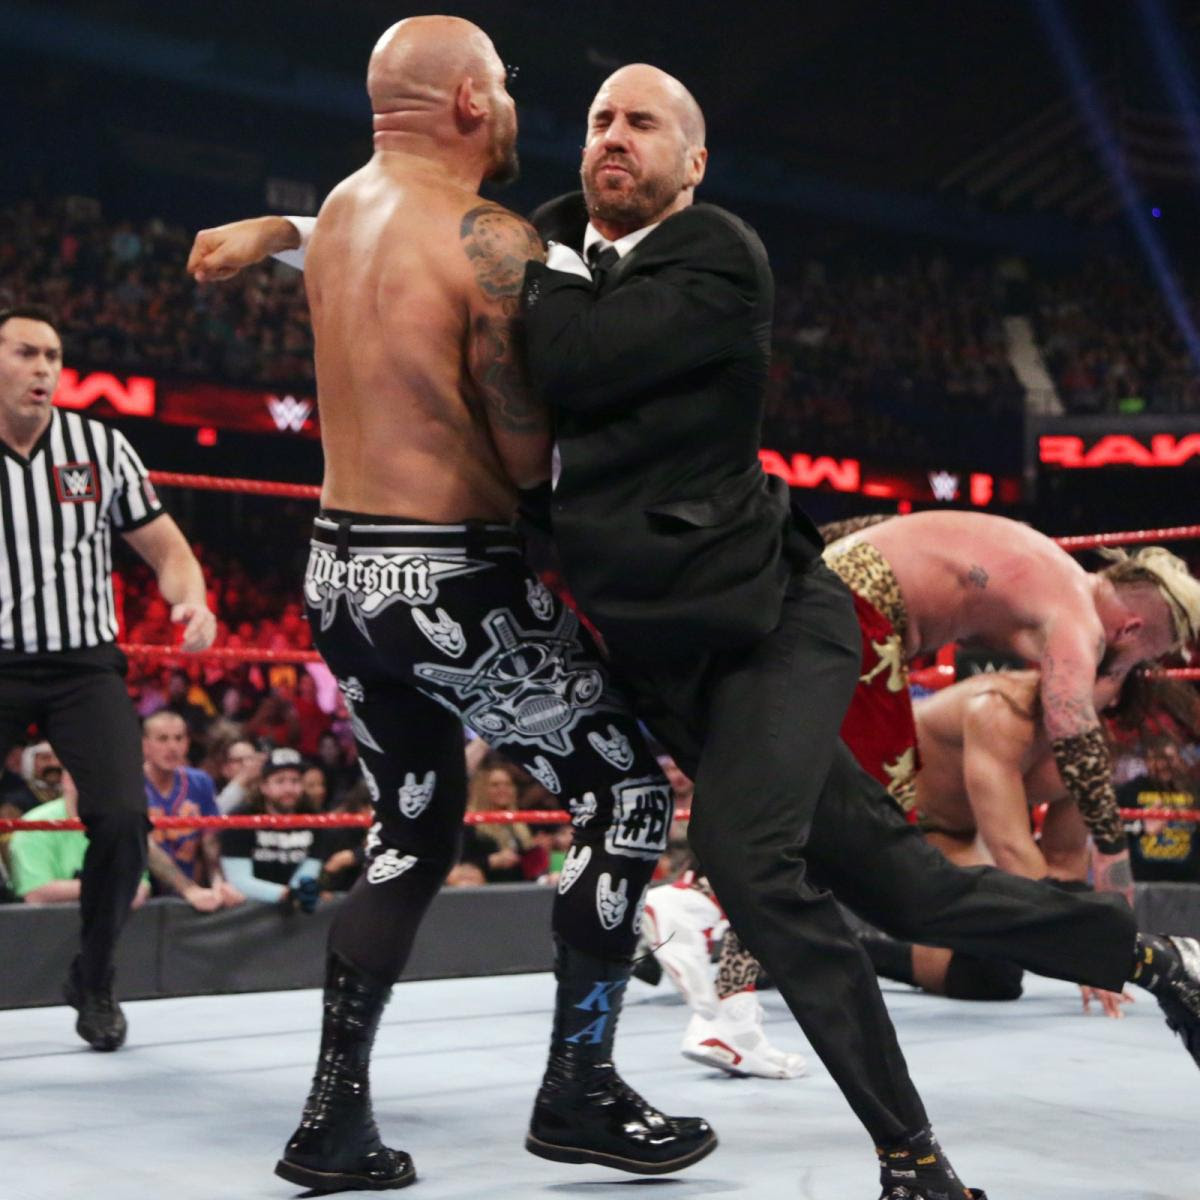 The match ends in disqualification after Cesaro gets involved.